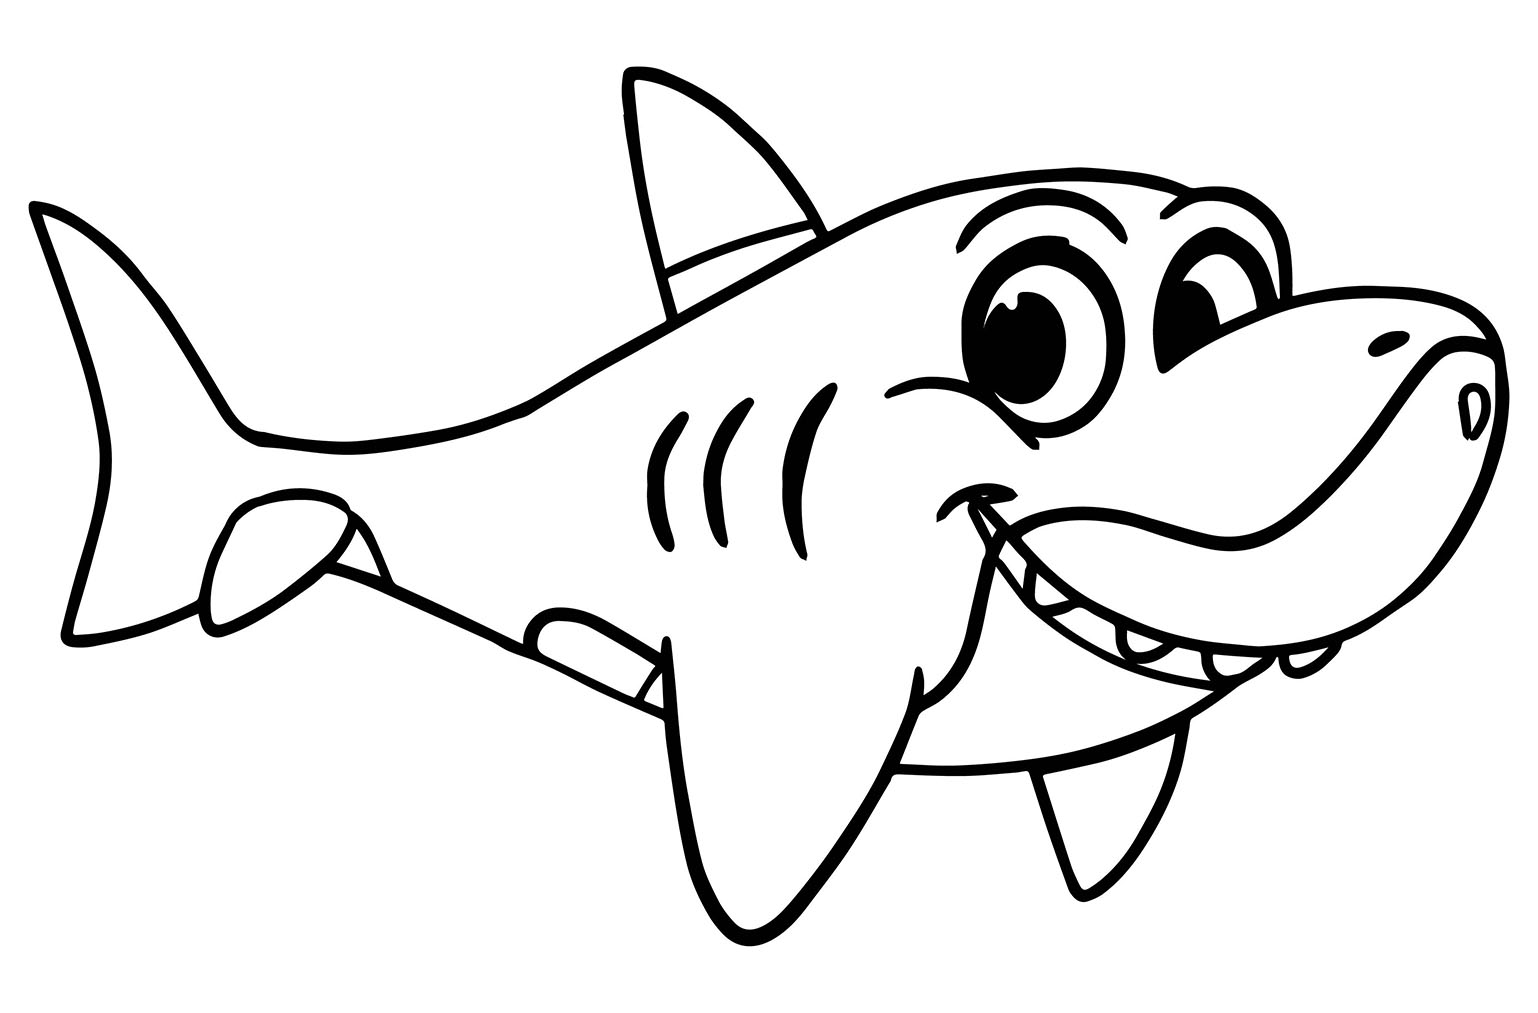 shark coloring pictures to print 33 free shark coloring pages printable print coloring pictures shark to